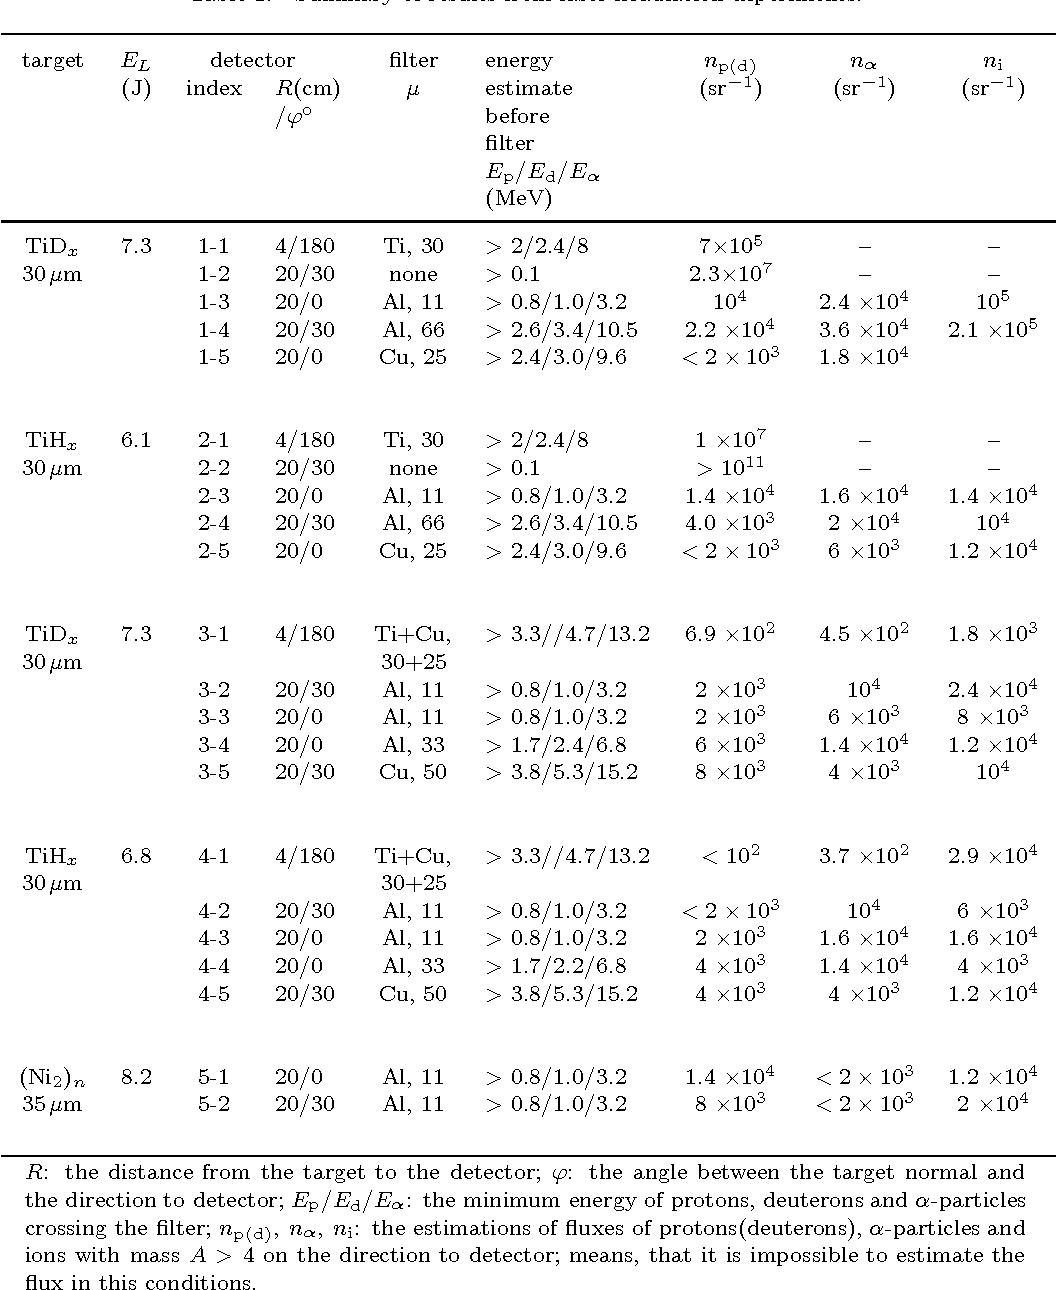 Table 1. Summary of results from laser irradiation experiments.